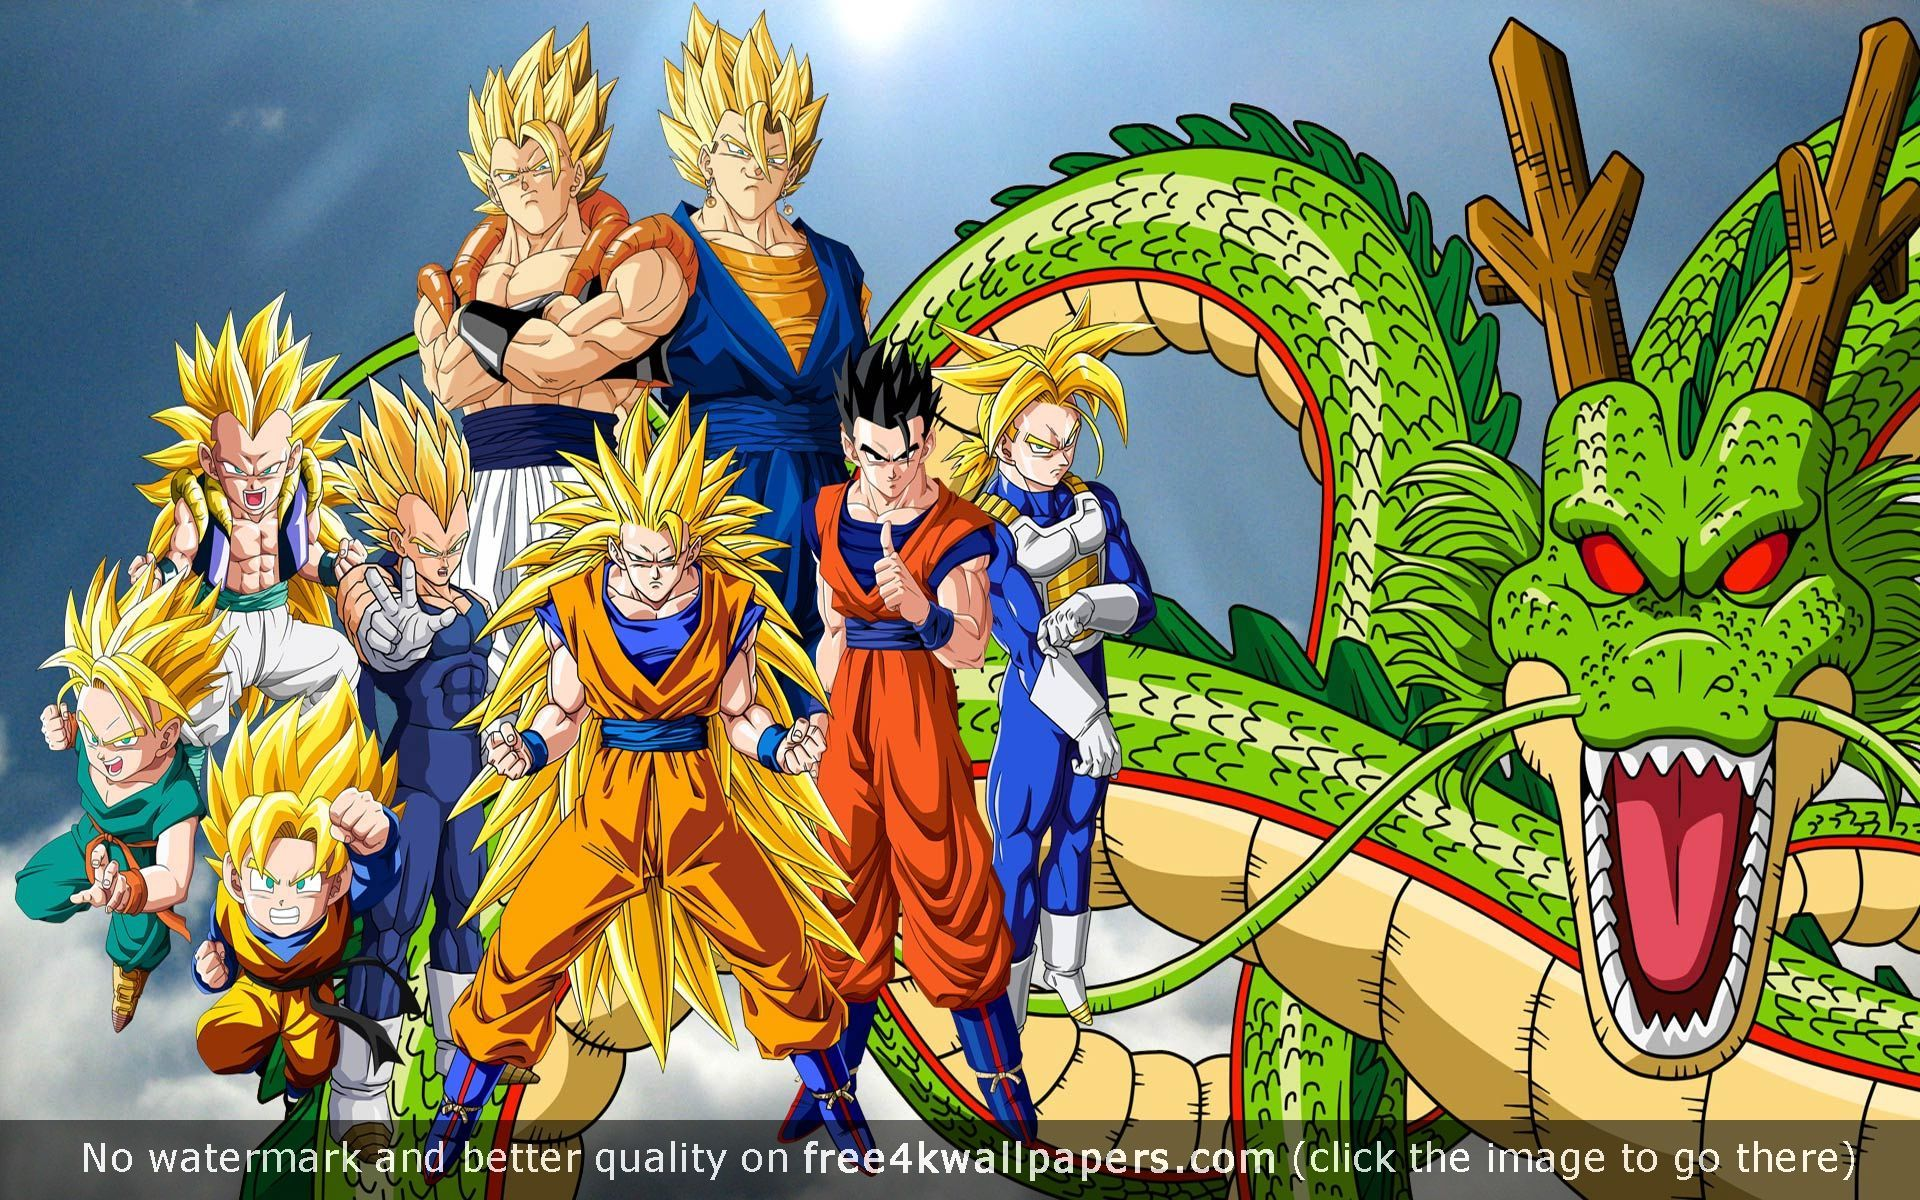 Dragon Ball Z S Hd 4K or HD wallpaper for your PC Mac or Mobile 1920x1200